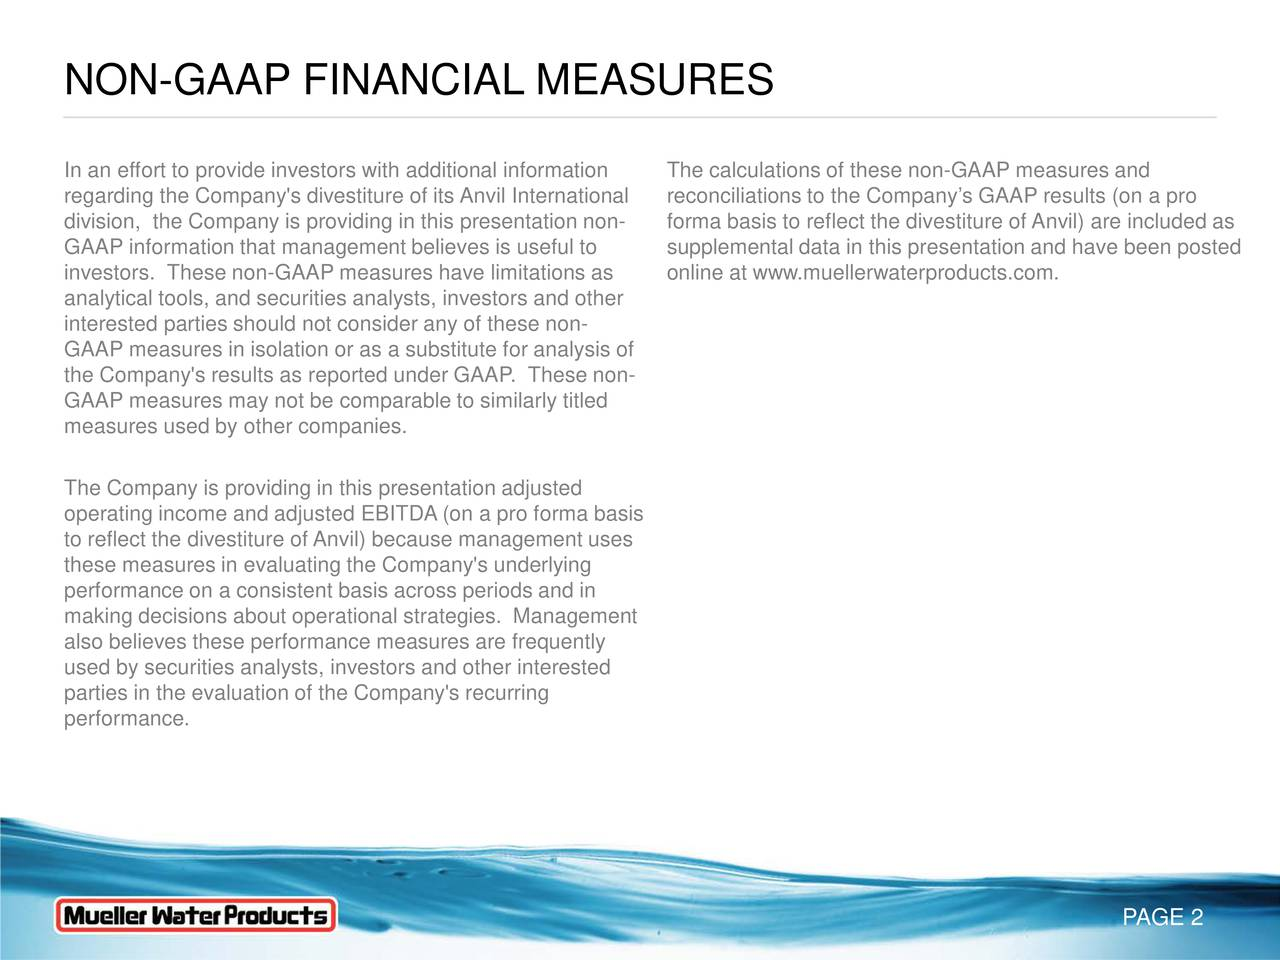 In an effort to provide investors with additional informationhe calculations of these non-GAAP measures and regarding the Company's divestiture of its Anvil Internationalconciliations to the Companys GAAP results (on a pro division, the Company is providing in this presentation non-forma basis to reflect the divestiture of Anvil) are included as GAAP information that management believes is useful to supplemental data in this presentation and have been posted investors. These non-GAAP measures have limitations as online at www.muellerwaterproducts.com. analytical tools, and securities analysts, investors and other interested parties should not consider any of these non- GAAP measures in isolation or as a substitute for analysis of the Company's results as reported under GAAP. These non- GAAP measures may not be comparable to similarly titled measures used by other companies. The Company is providing in this presentation adjusted operating income and adjusted EBITDA (on a pro forma basis to reflect the divestiture of Anvil) because management uses these measures in evaluating the Company's underlying performance on a consistent basis across periods and in making decisions about operational strategies. Management also believes these performance measures are frequently used by securities analysts, investors and other interested parties in the evaluation of the Company's recurring performance. PAGE 2